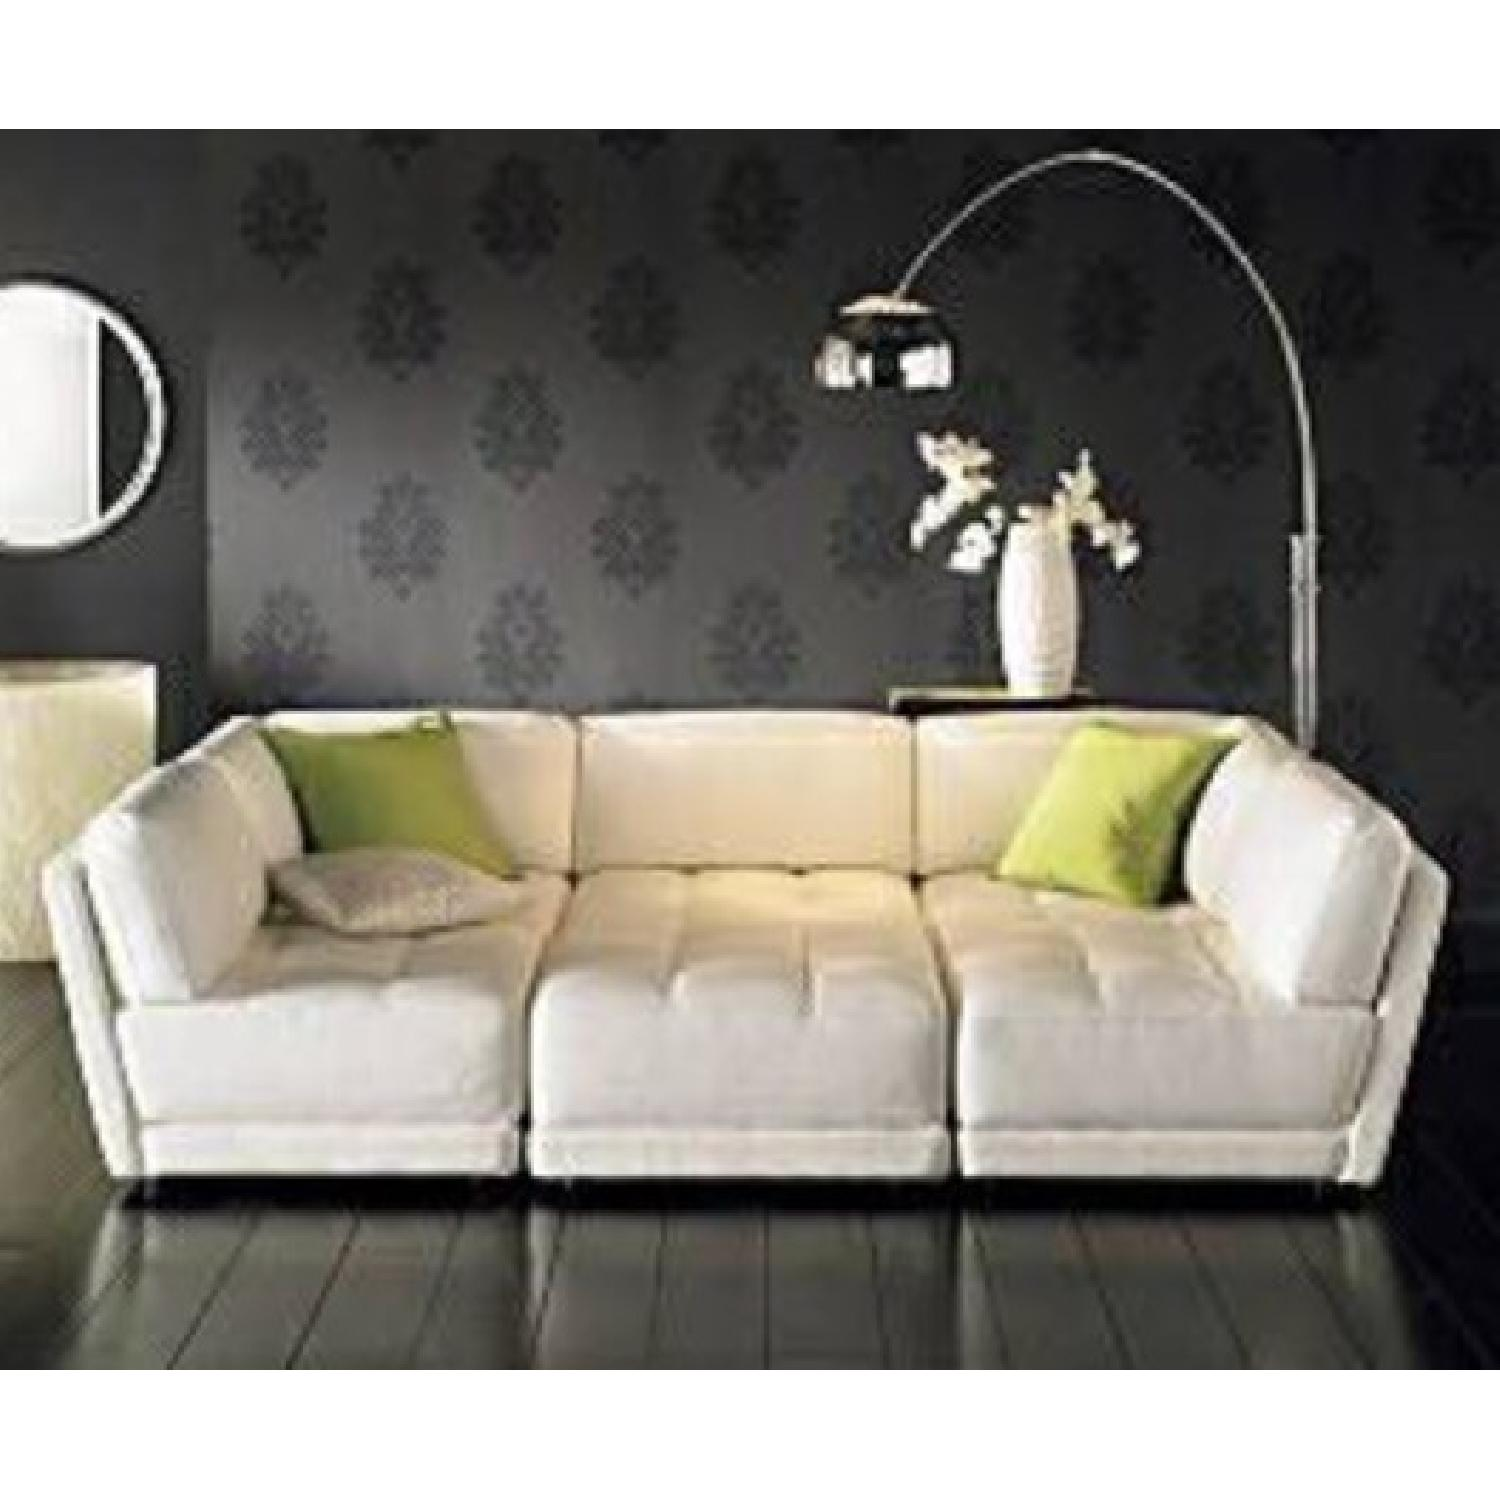 Vice Versa White Leather Modular Couch - image-2